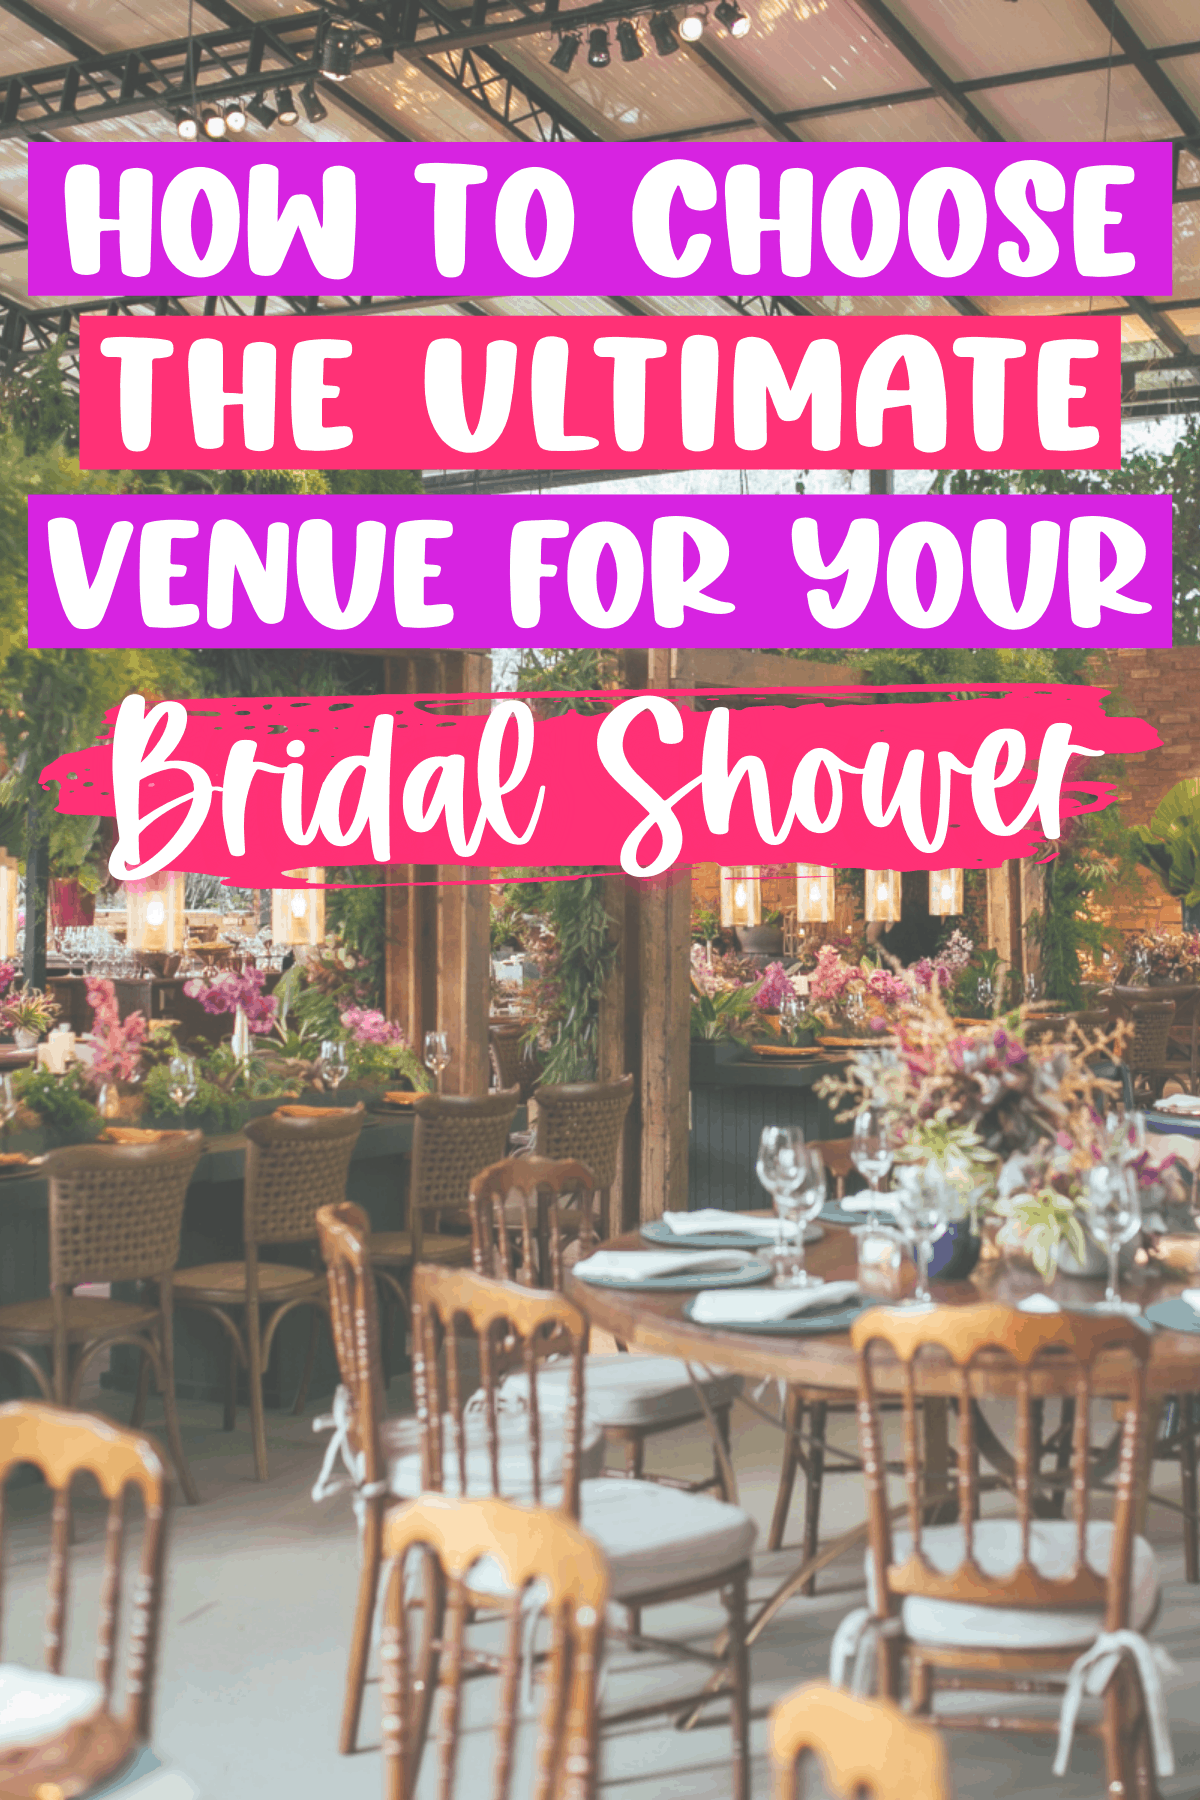 7 Places to Have a Bridal Shower